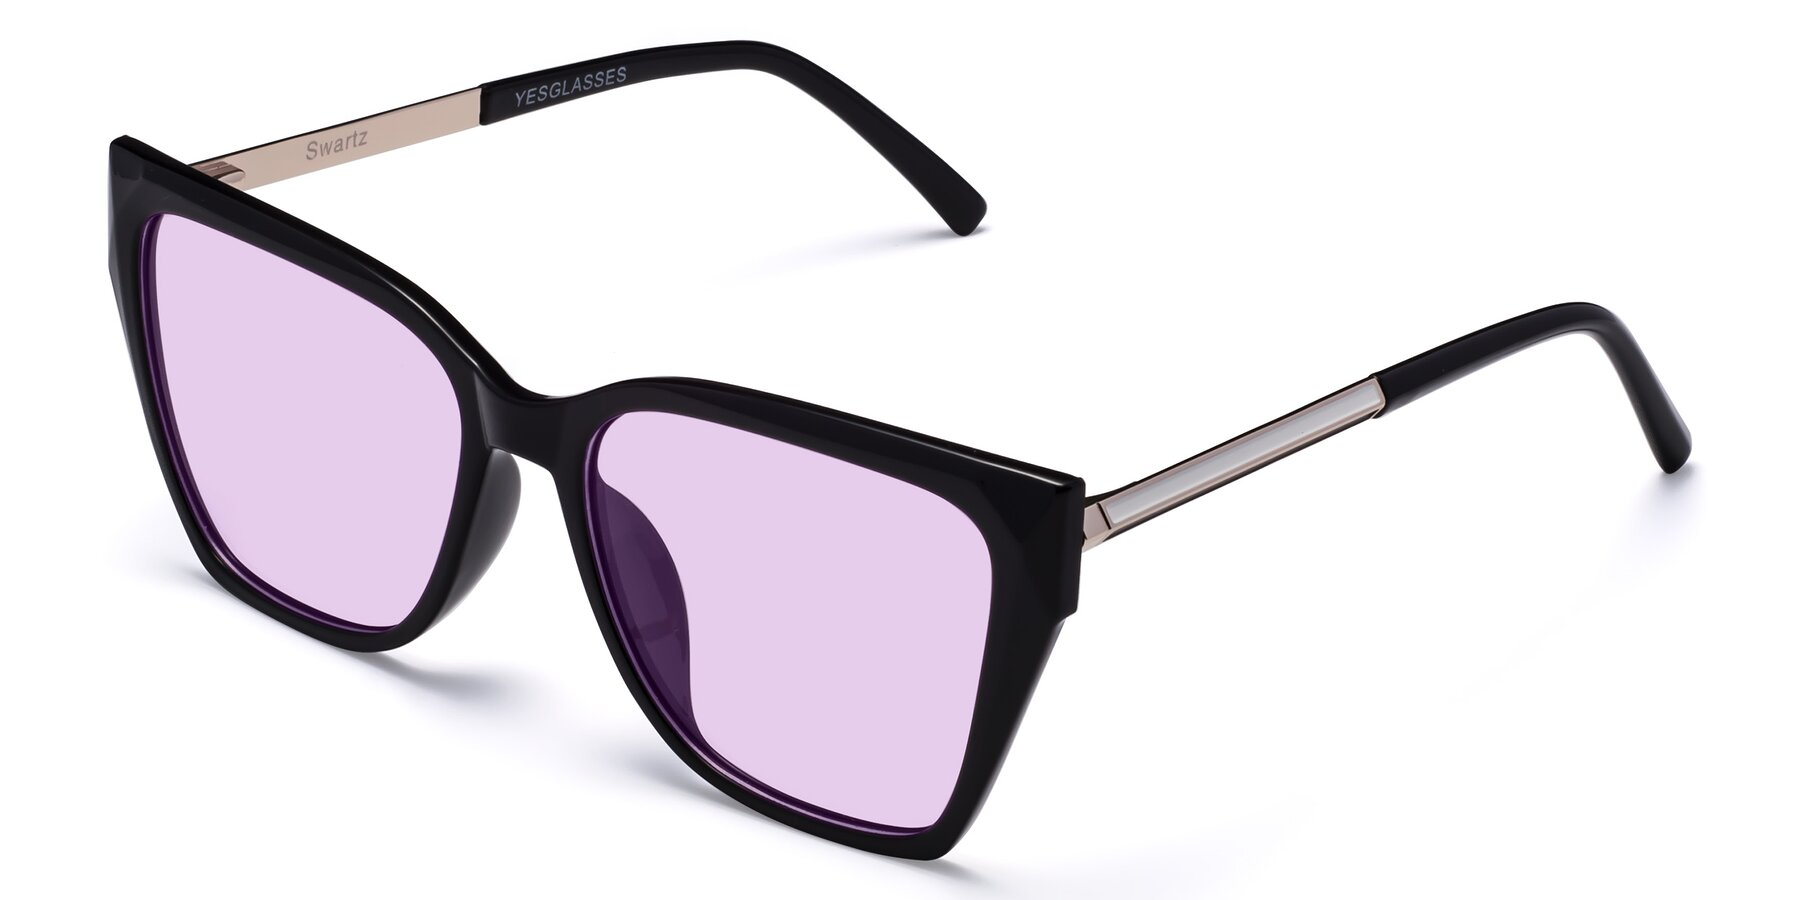 Angle of Swartz in Black with Light Purple Tinted Lenses